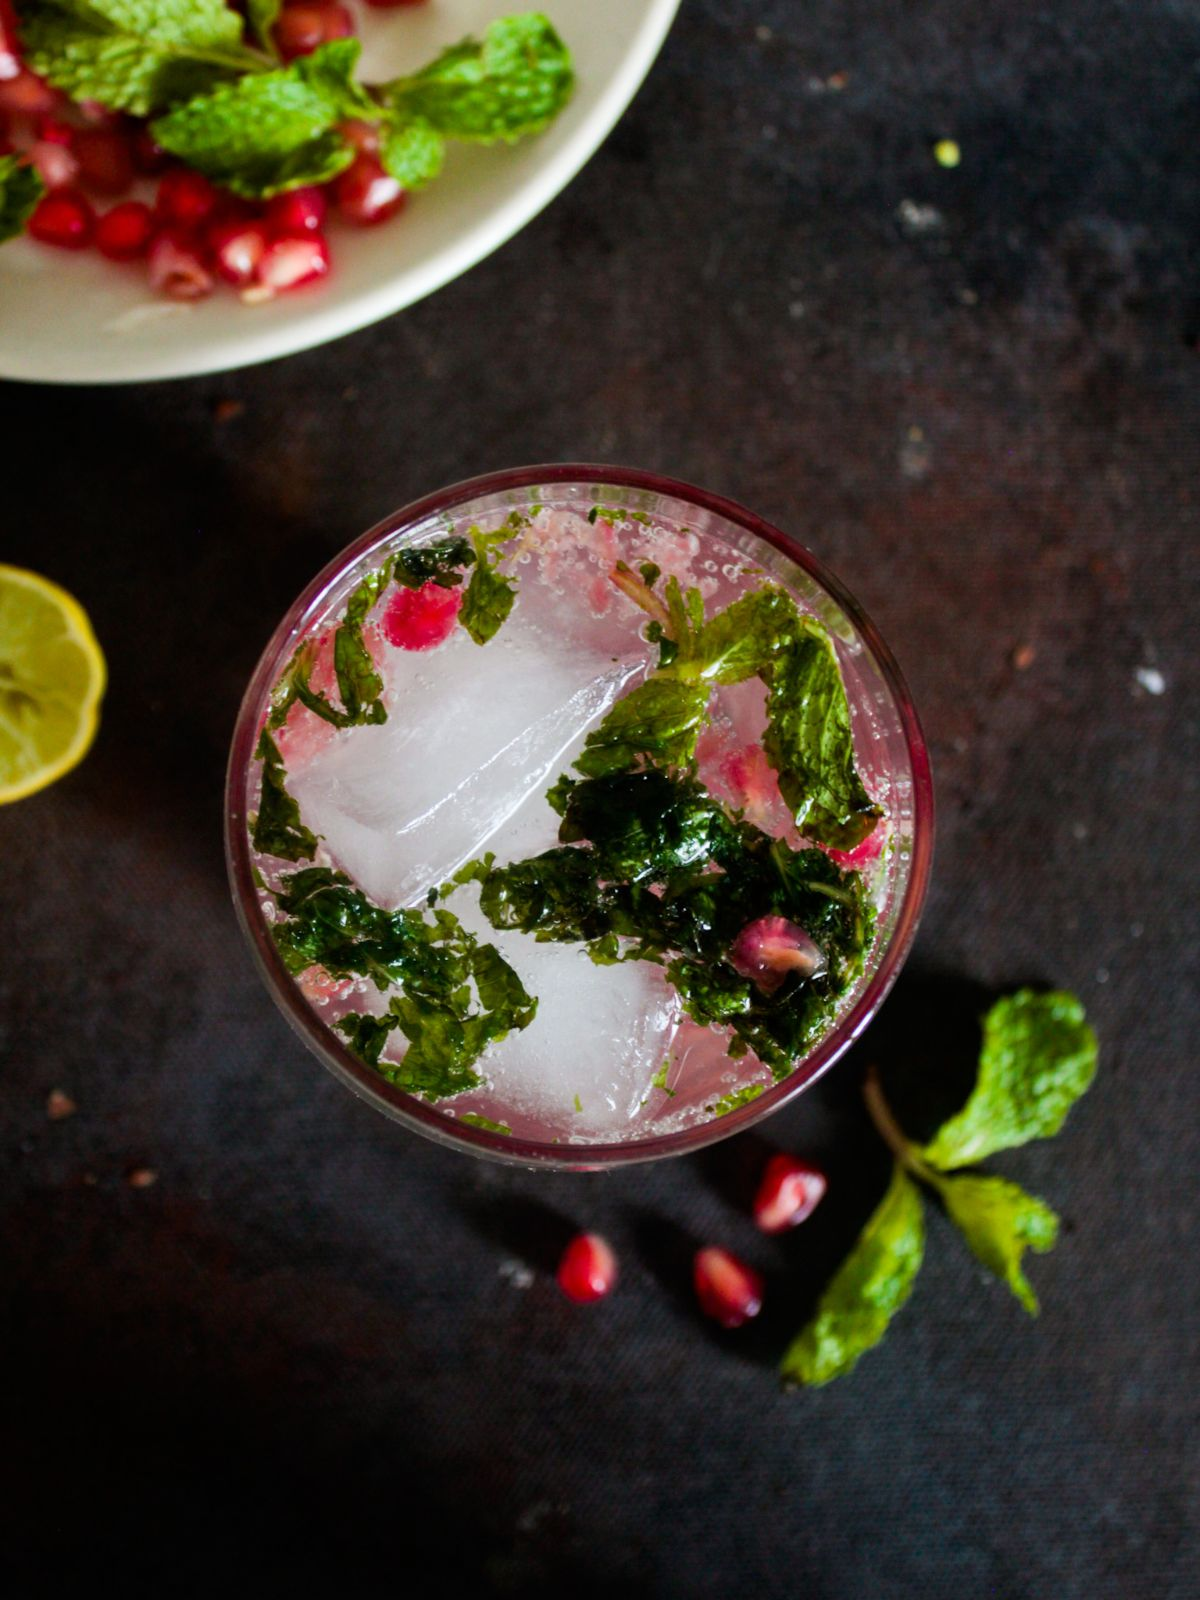 Image looking down at top of glass with mint and pomegranates